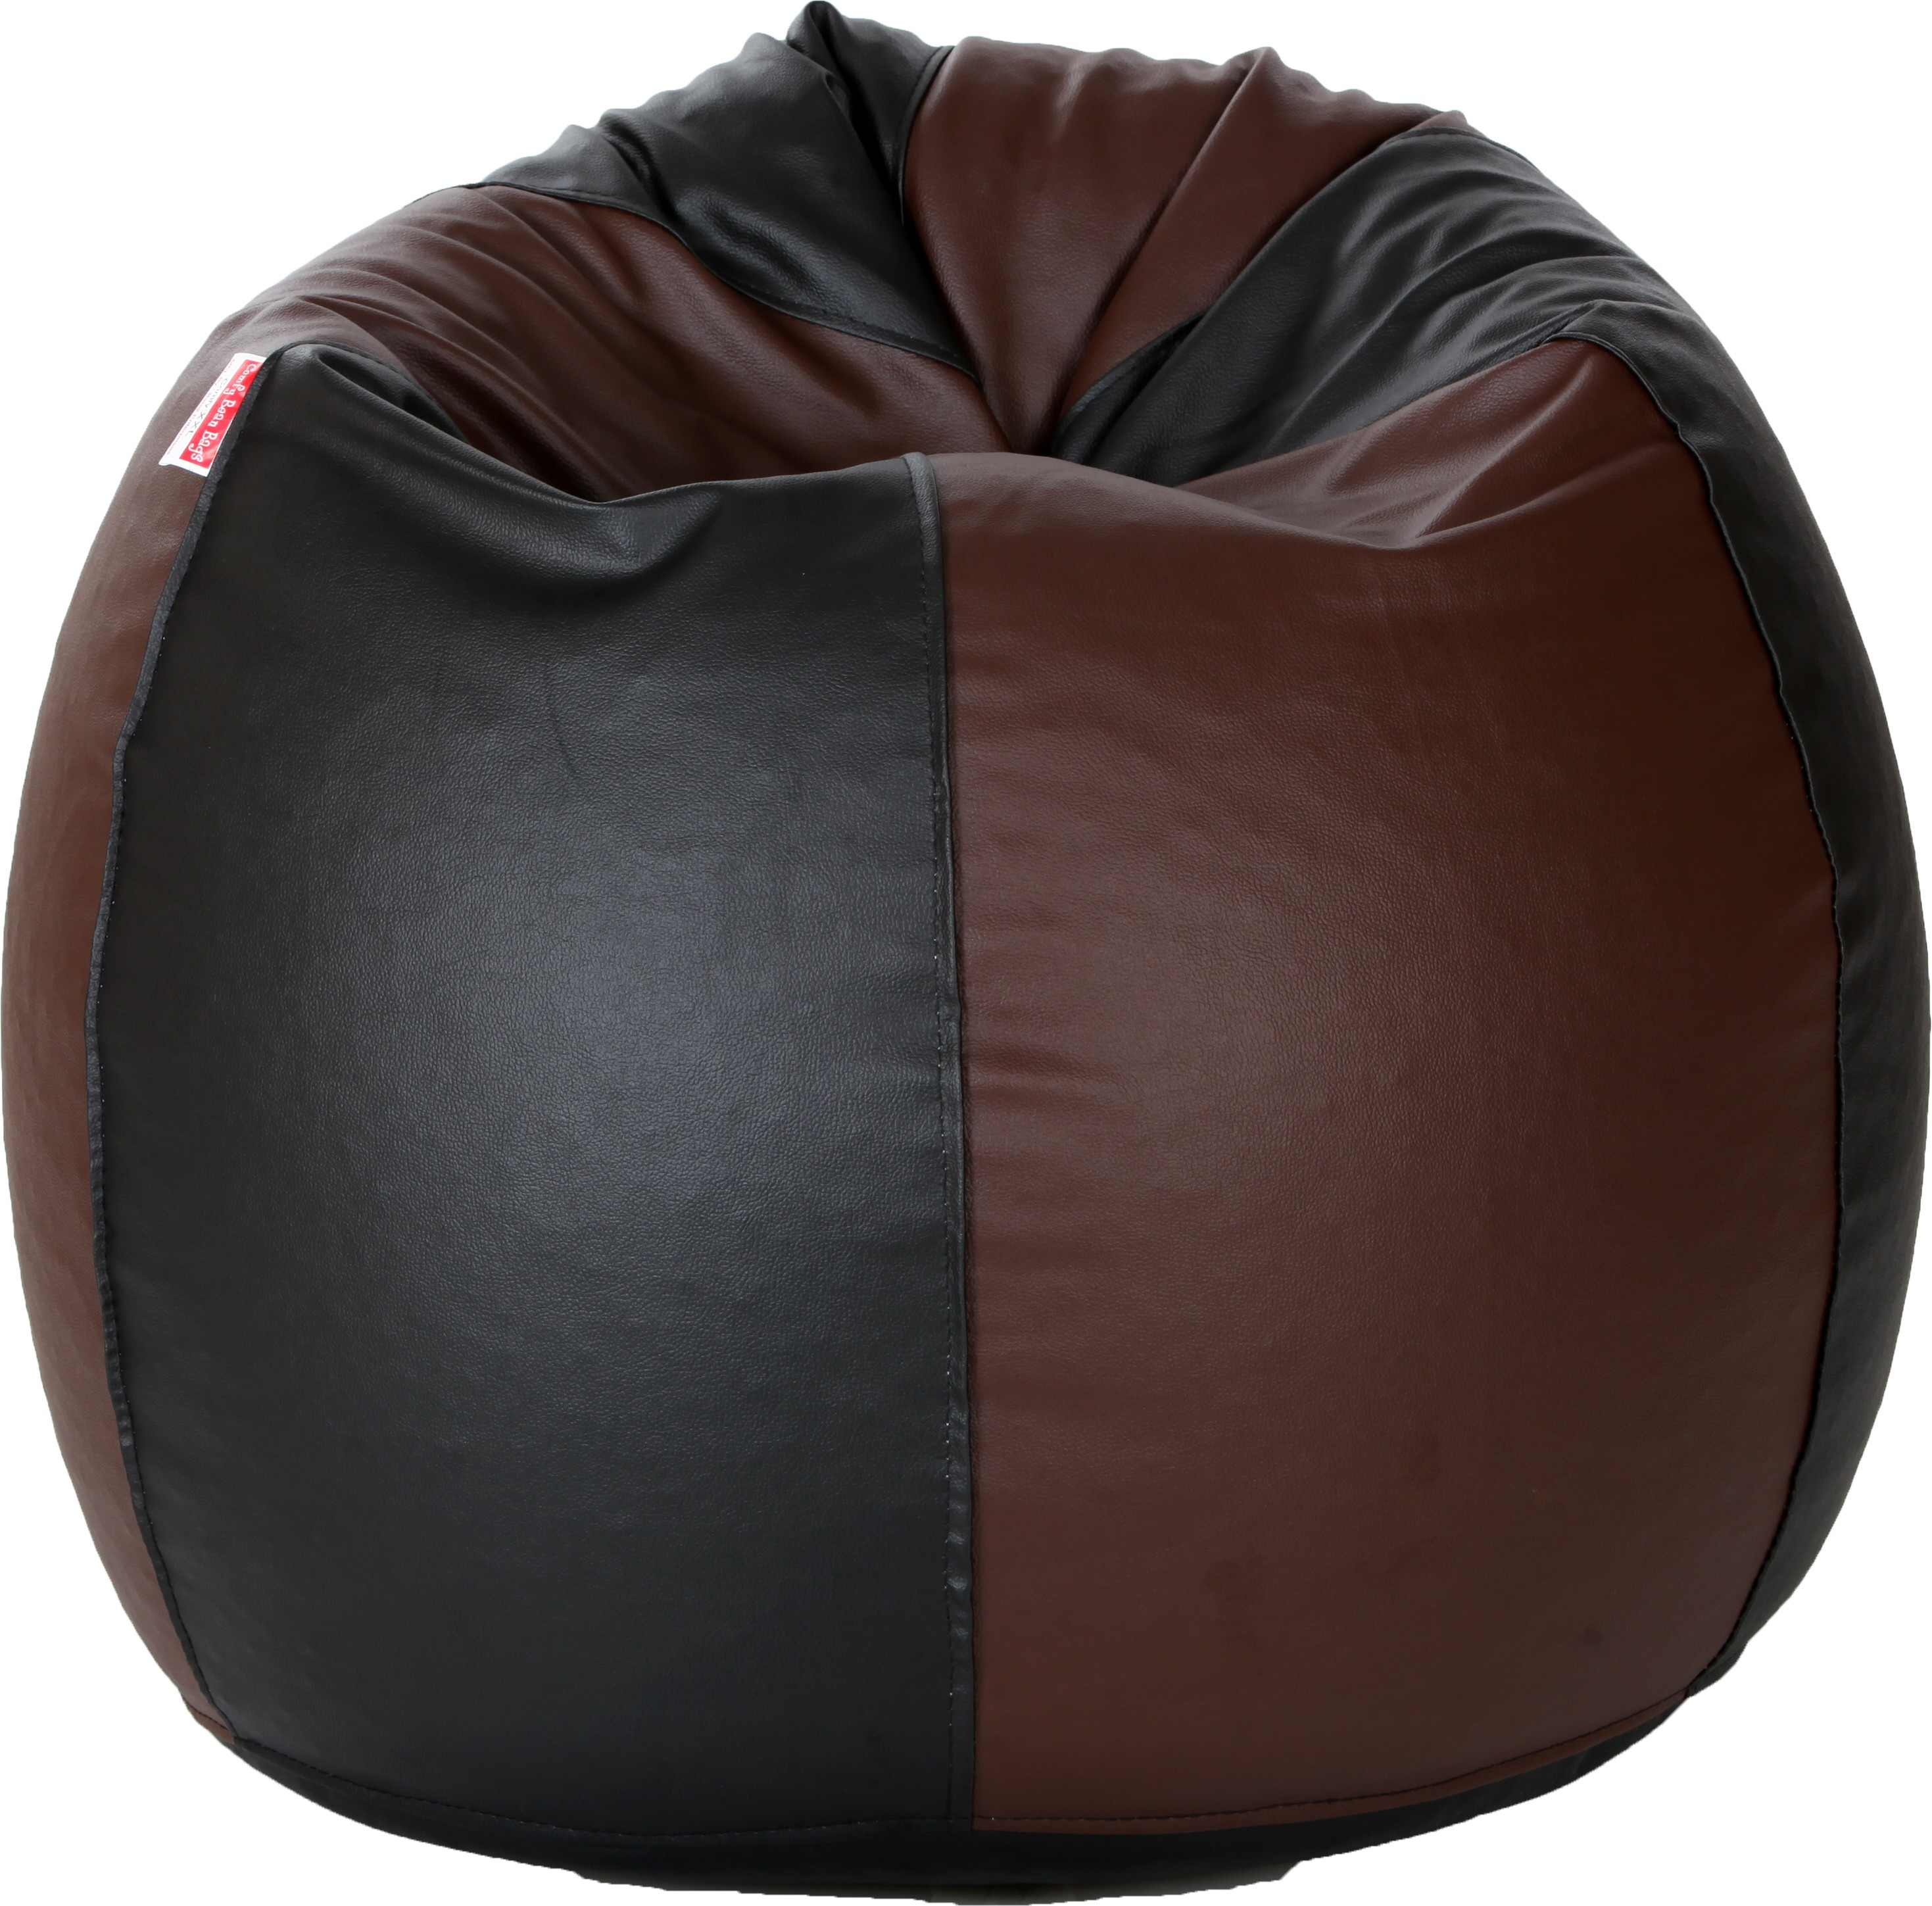 View Comfy Bean Bags XXXL Bean Bag Cover(Black, Maroon) Furniture (Comfy Bean Bags)